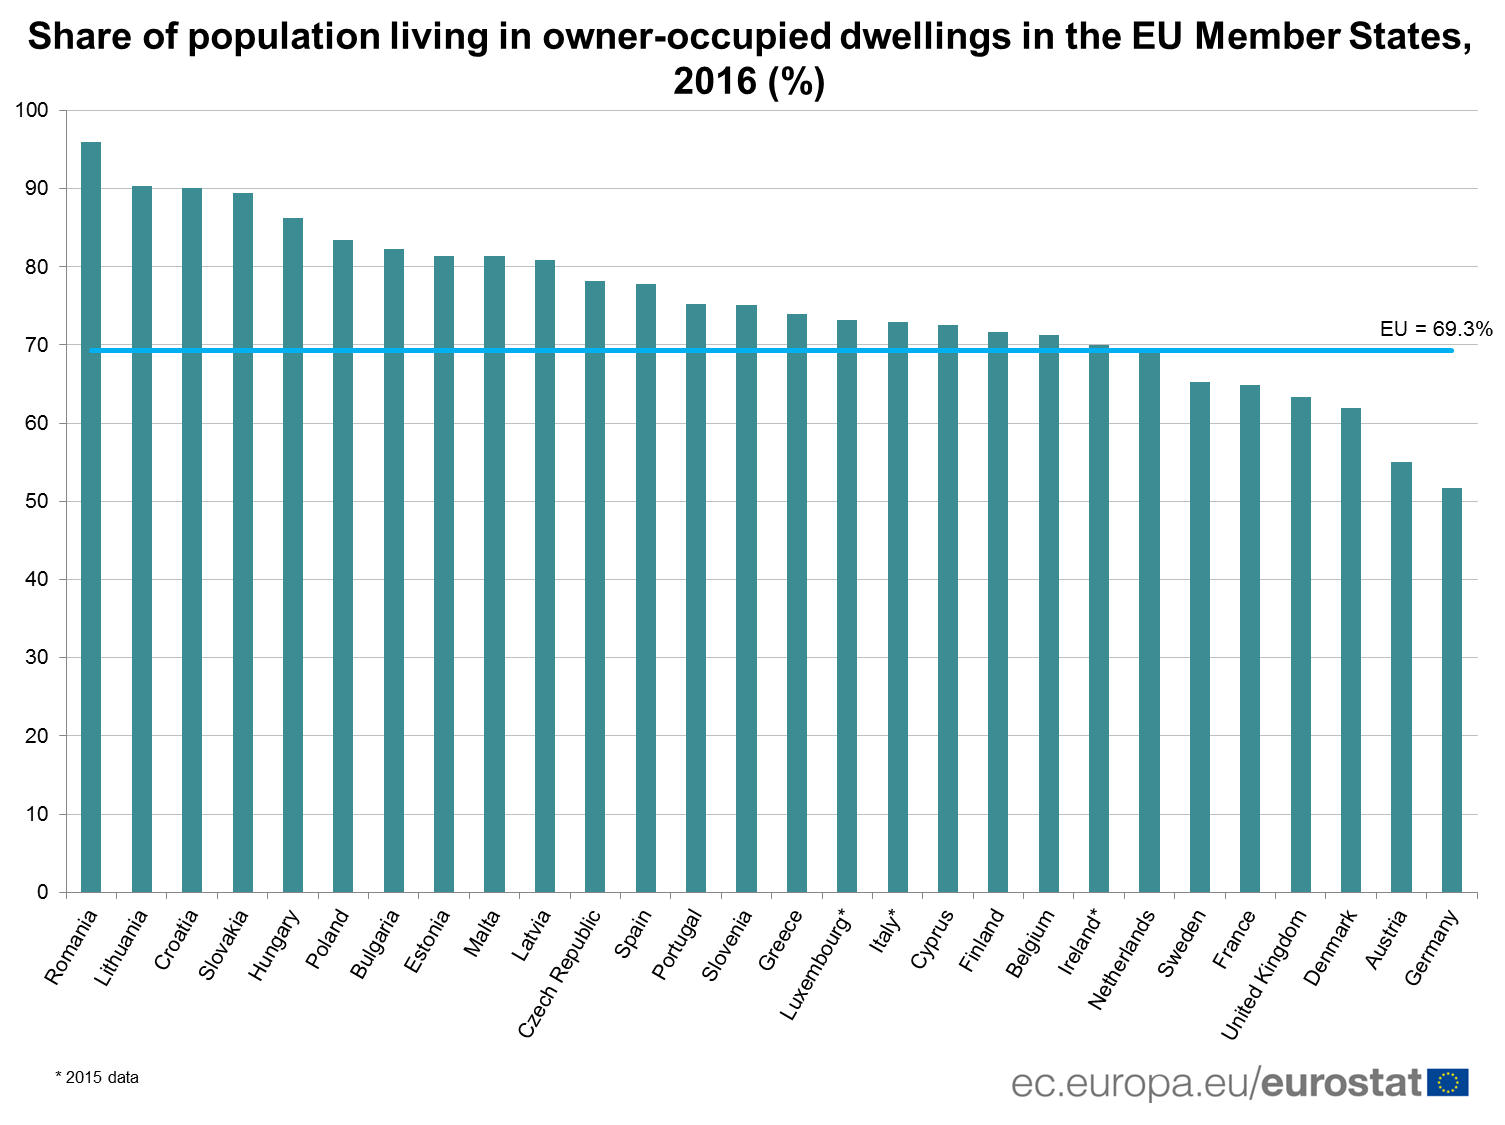 Share of population living in owner-occupied dwellings in the EU Member States